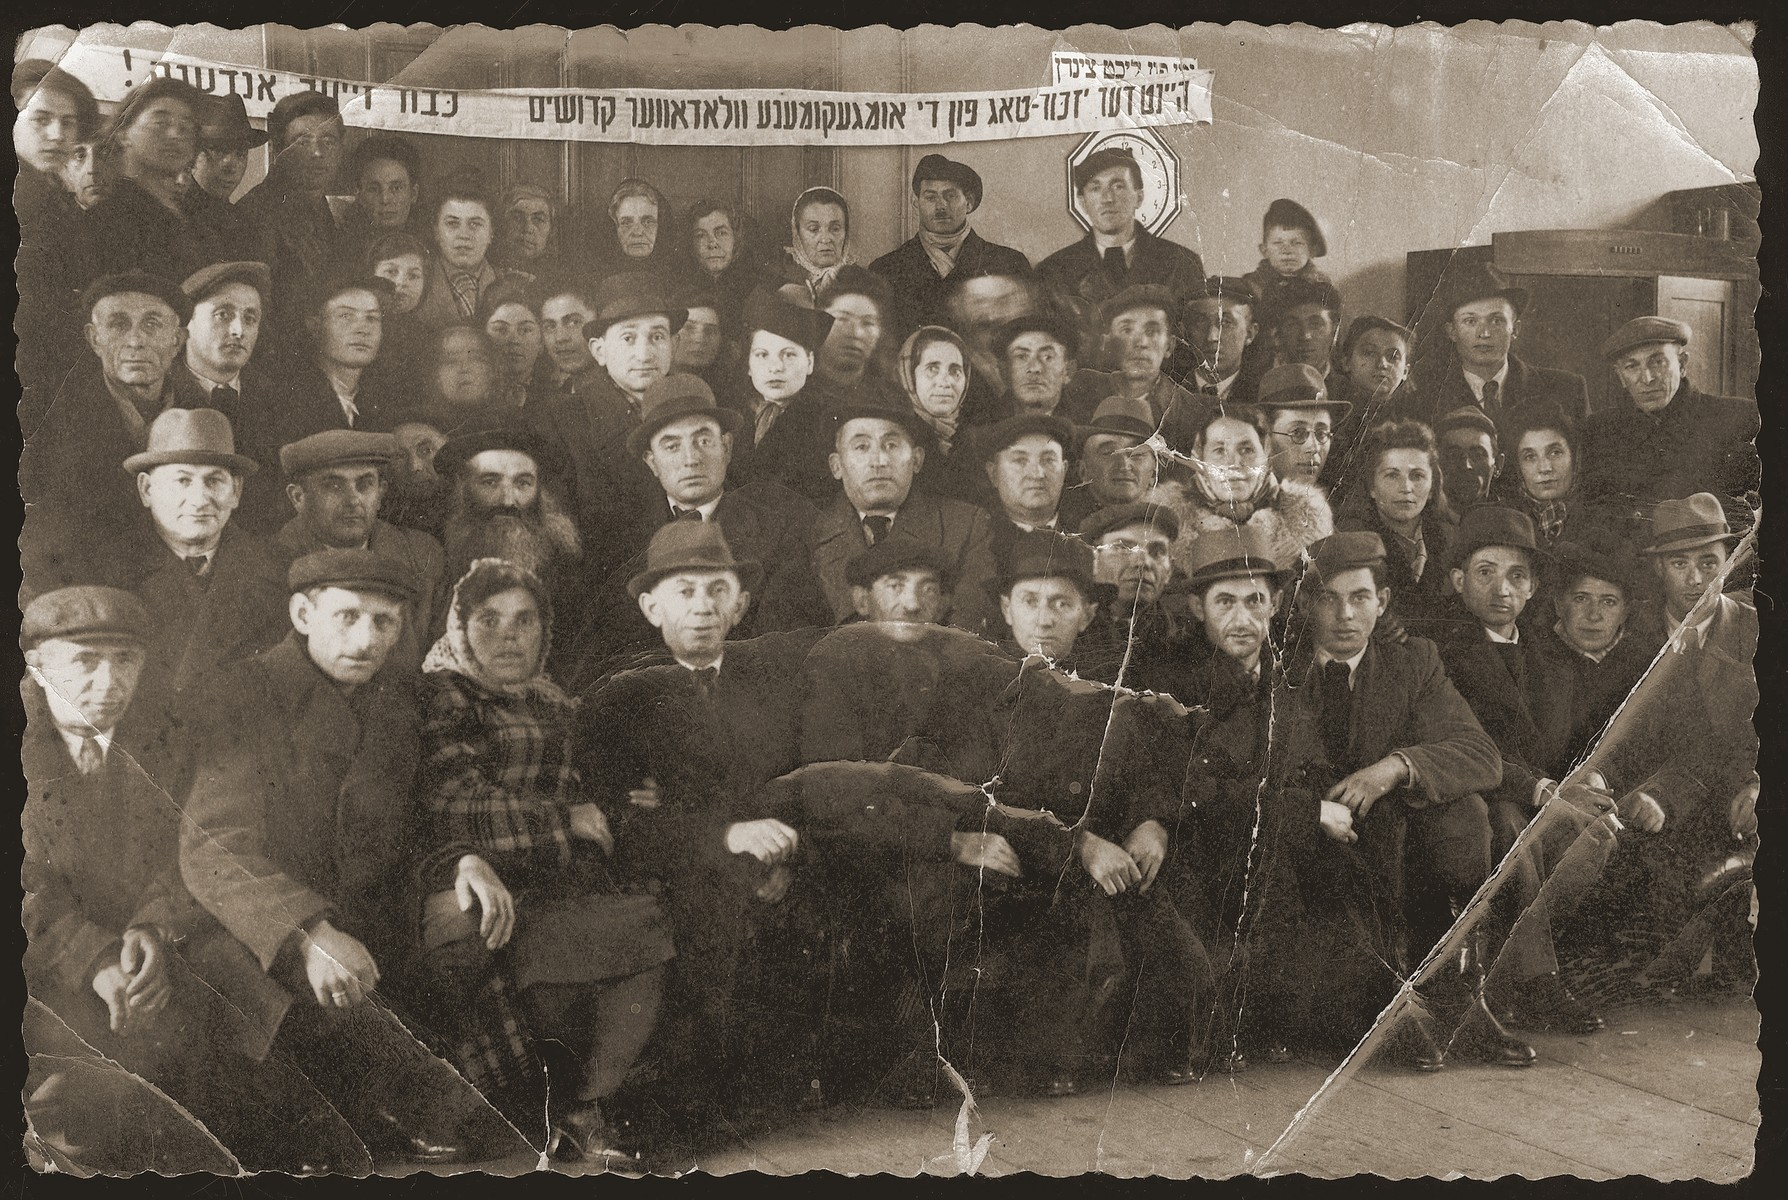 Group portrait of Jewish DPs taken at a memorial service commemorating the anniversary of the murder of the Jews of Wlodawa.   Jehoshua Glincman is sitting in the second row from the bottom, fifth from the left.  He was known as Yusha/Yasha, his Polish/Russian names and he survived the camps with his brother.  During the war, he lived in the Wlodawa ghetto and worked as a prisoner at Adampol Arbeitslager and Sobibor.  He and his brother survived, recuperated at the DP camp in Berlin, and Jehoshua later testified at the trial of the Nazis in charge of the Wlodowa ghetto, Adampol Arbeitslager and Sobibor.